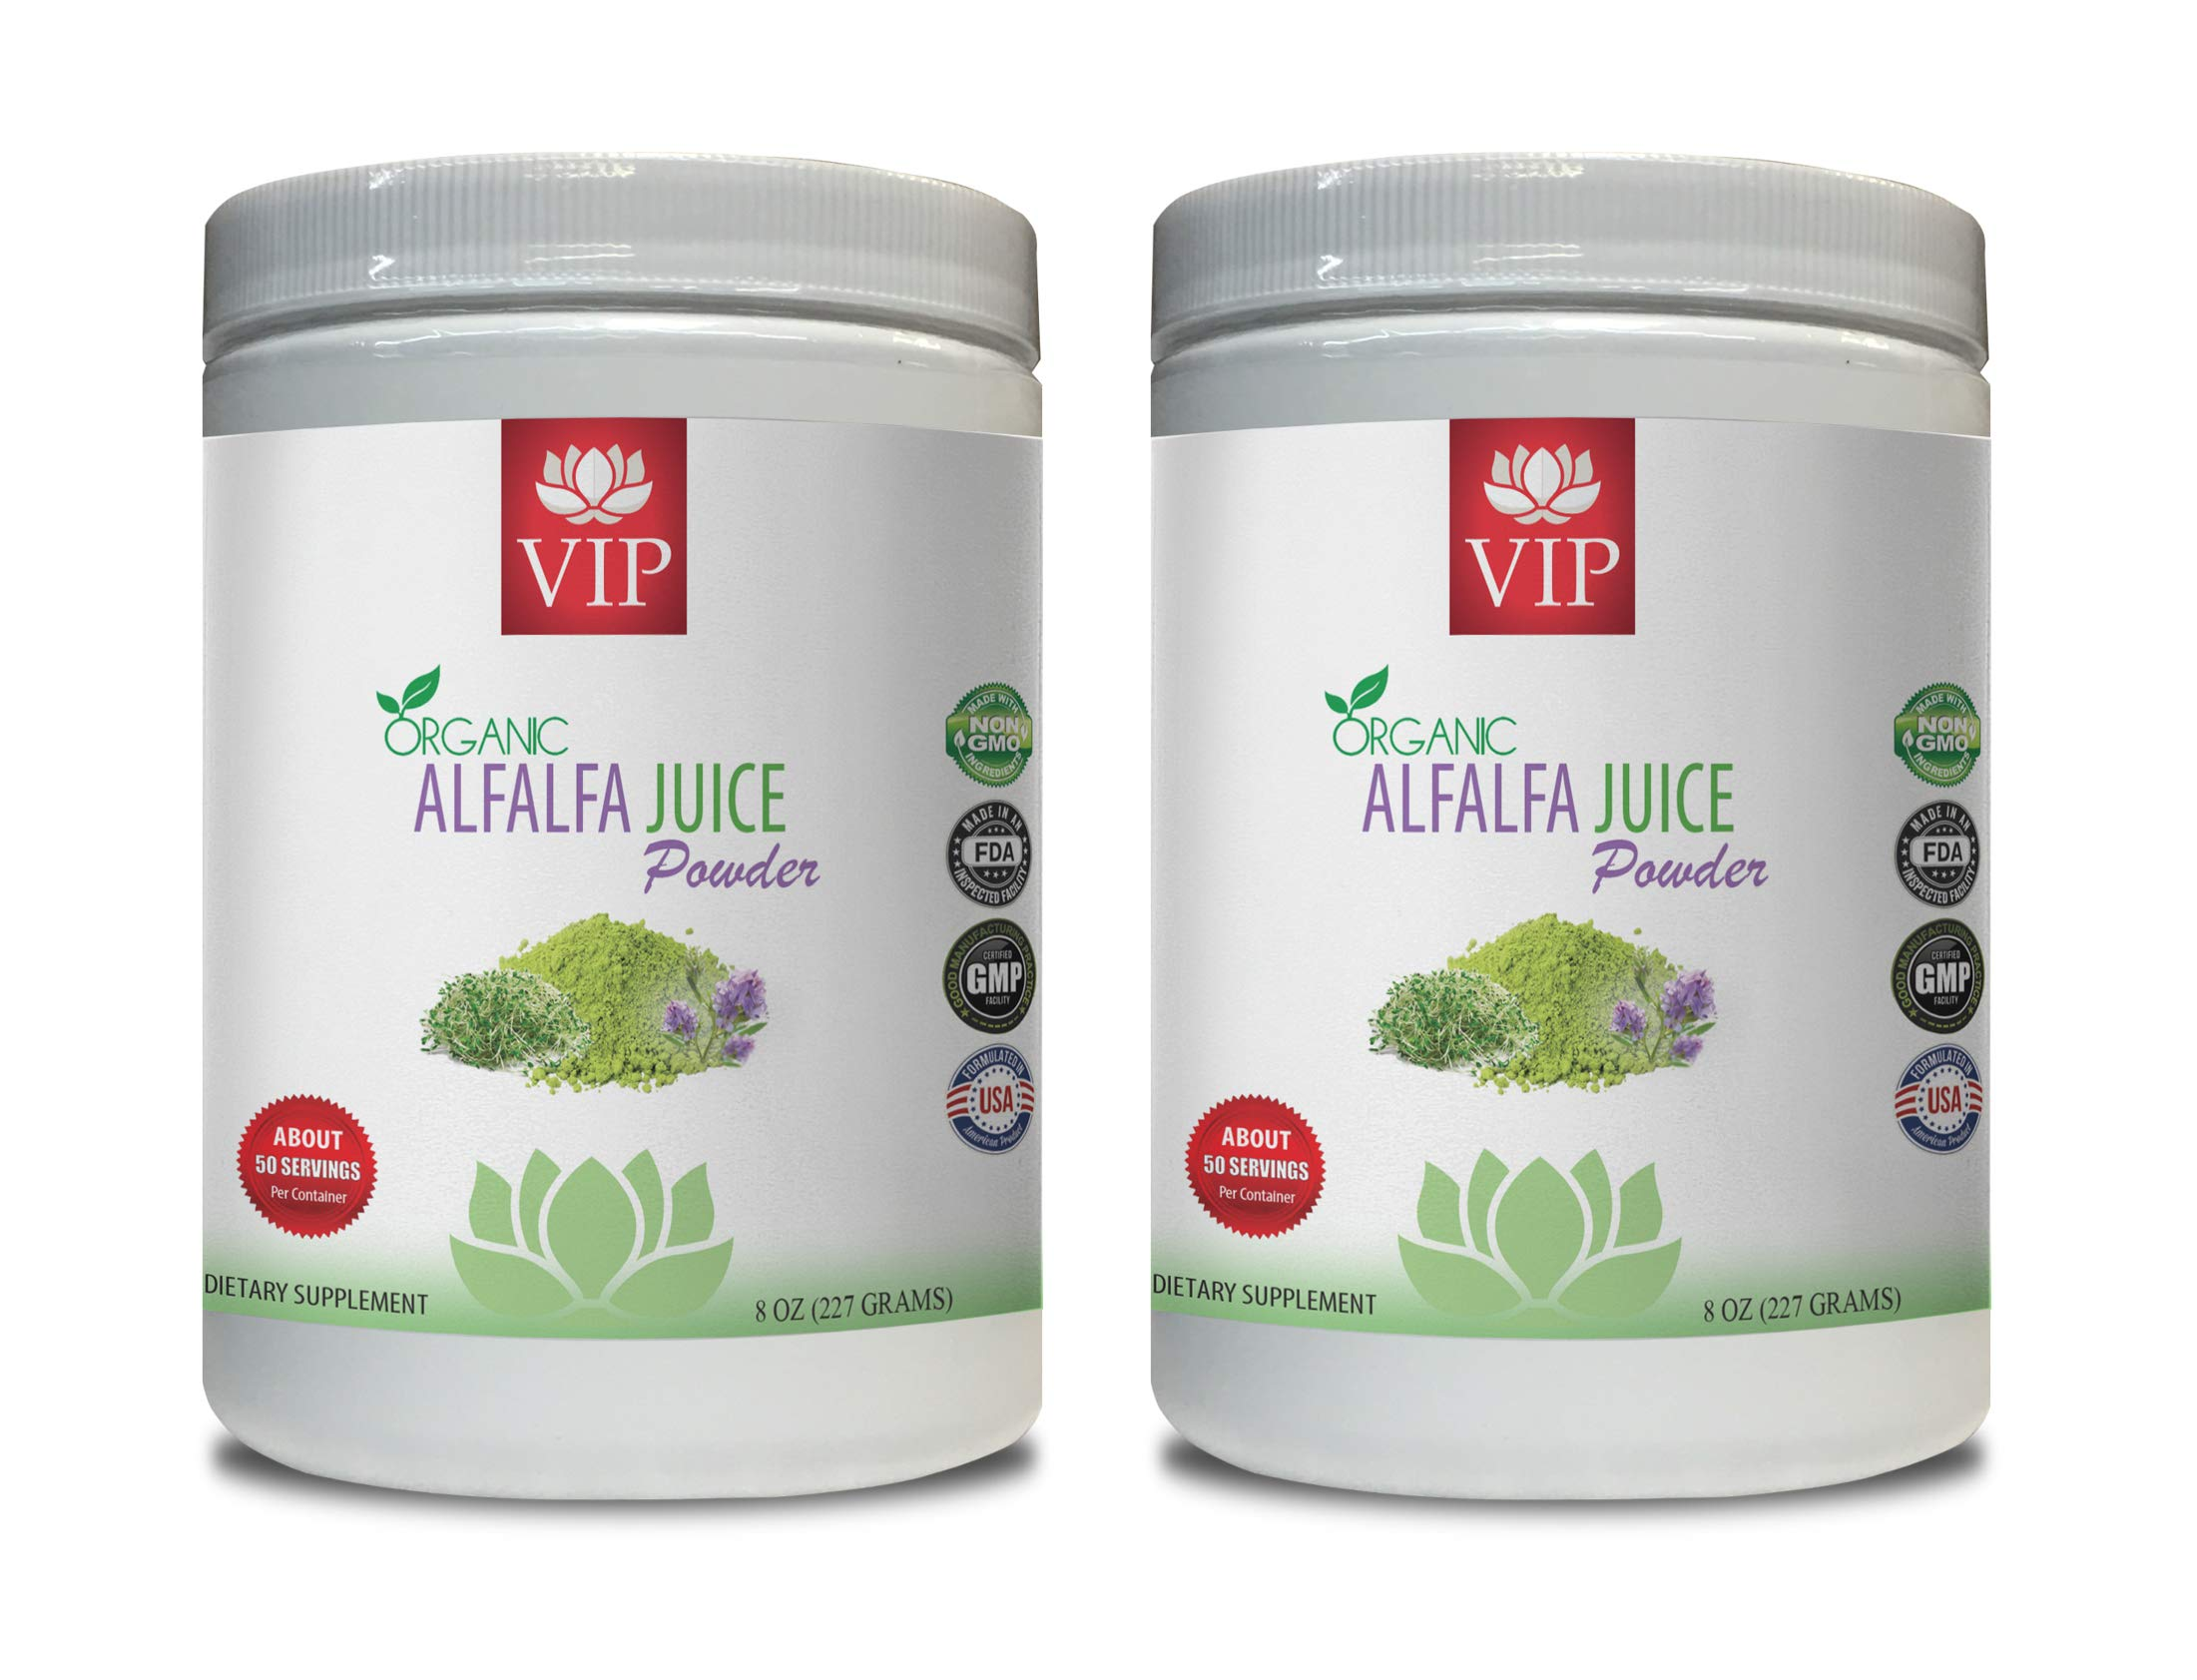 antioxidant Vitamins for Women - Alfalfa Organic Juice Powder - Alfalfa Powder 1lb - 2 Cans 16 OZ (100 Servings)